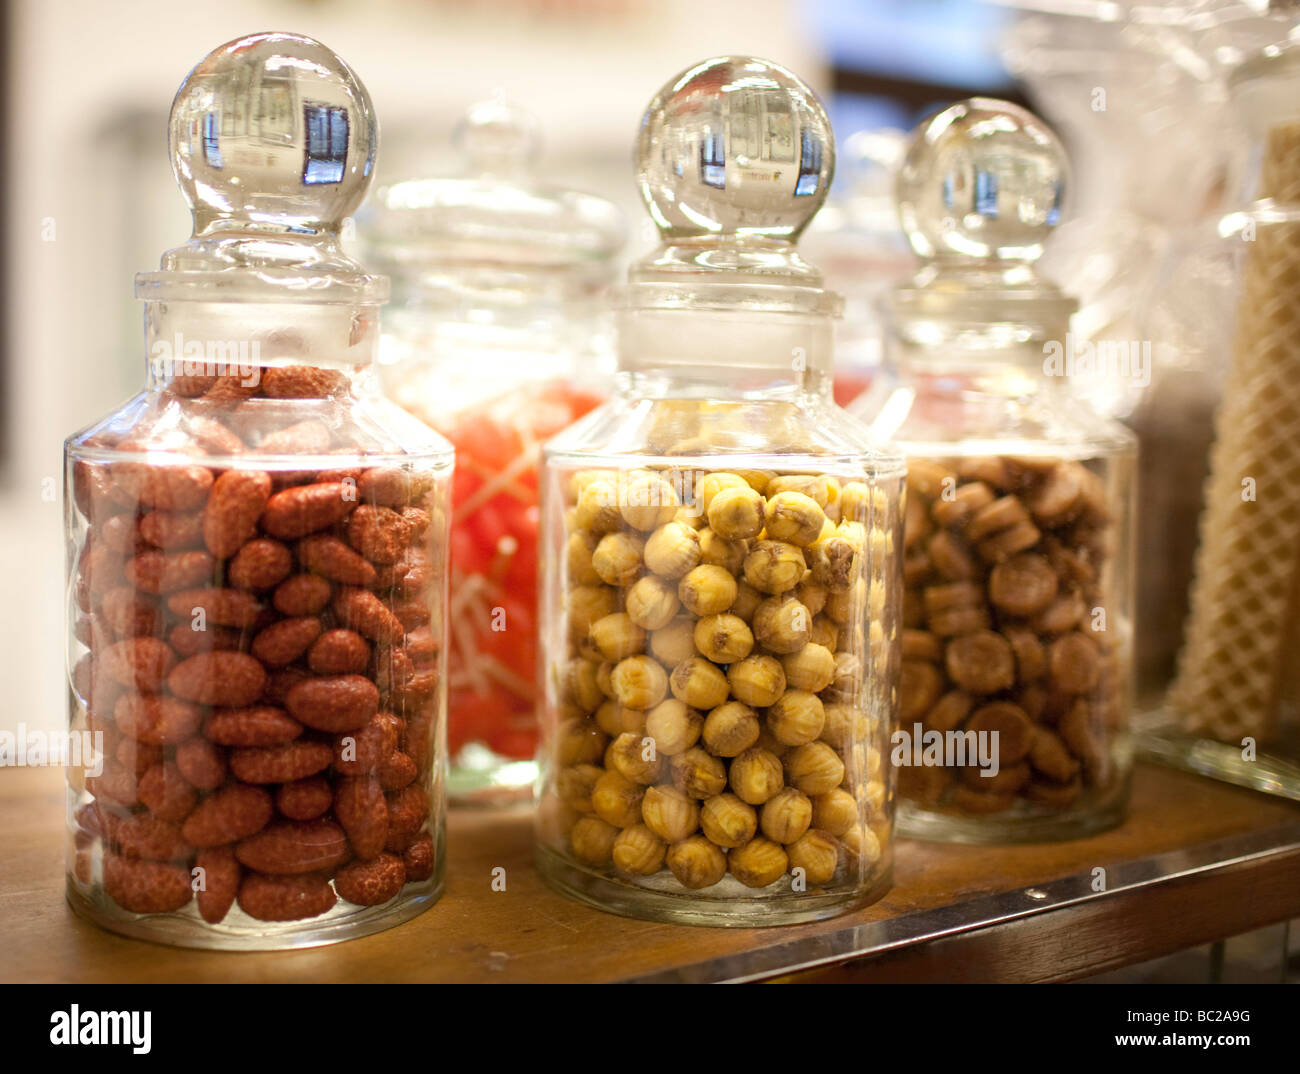 Glas filled with candy - Stock Image